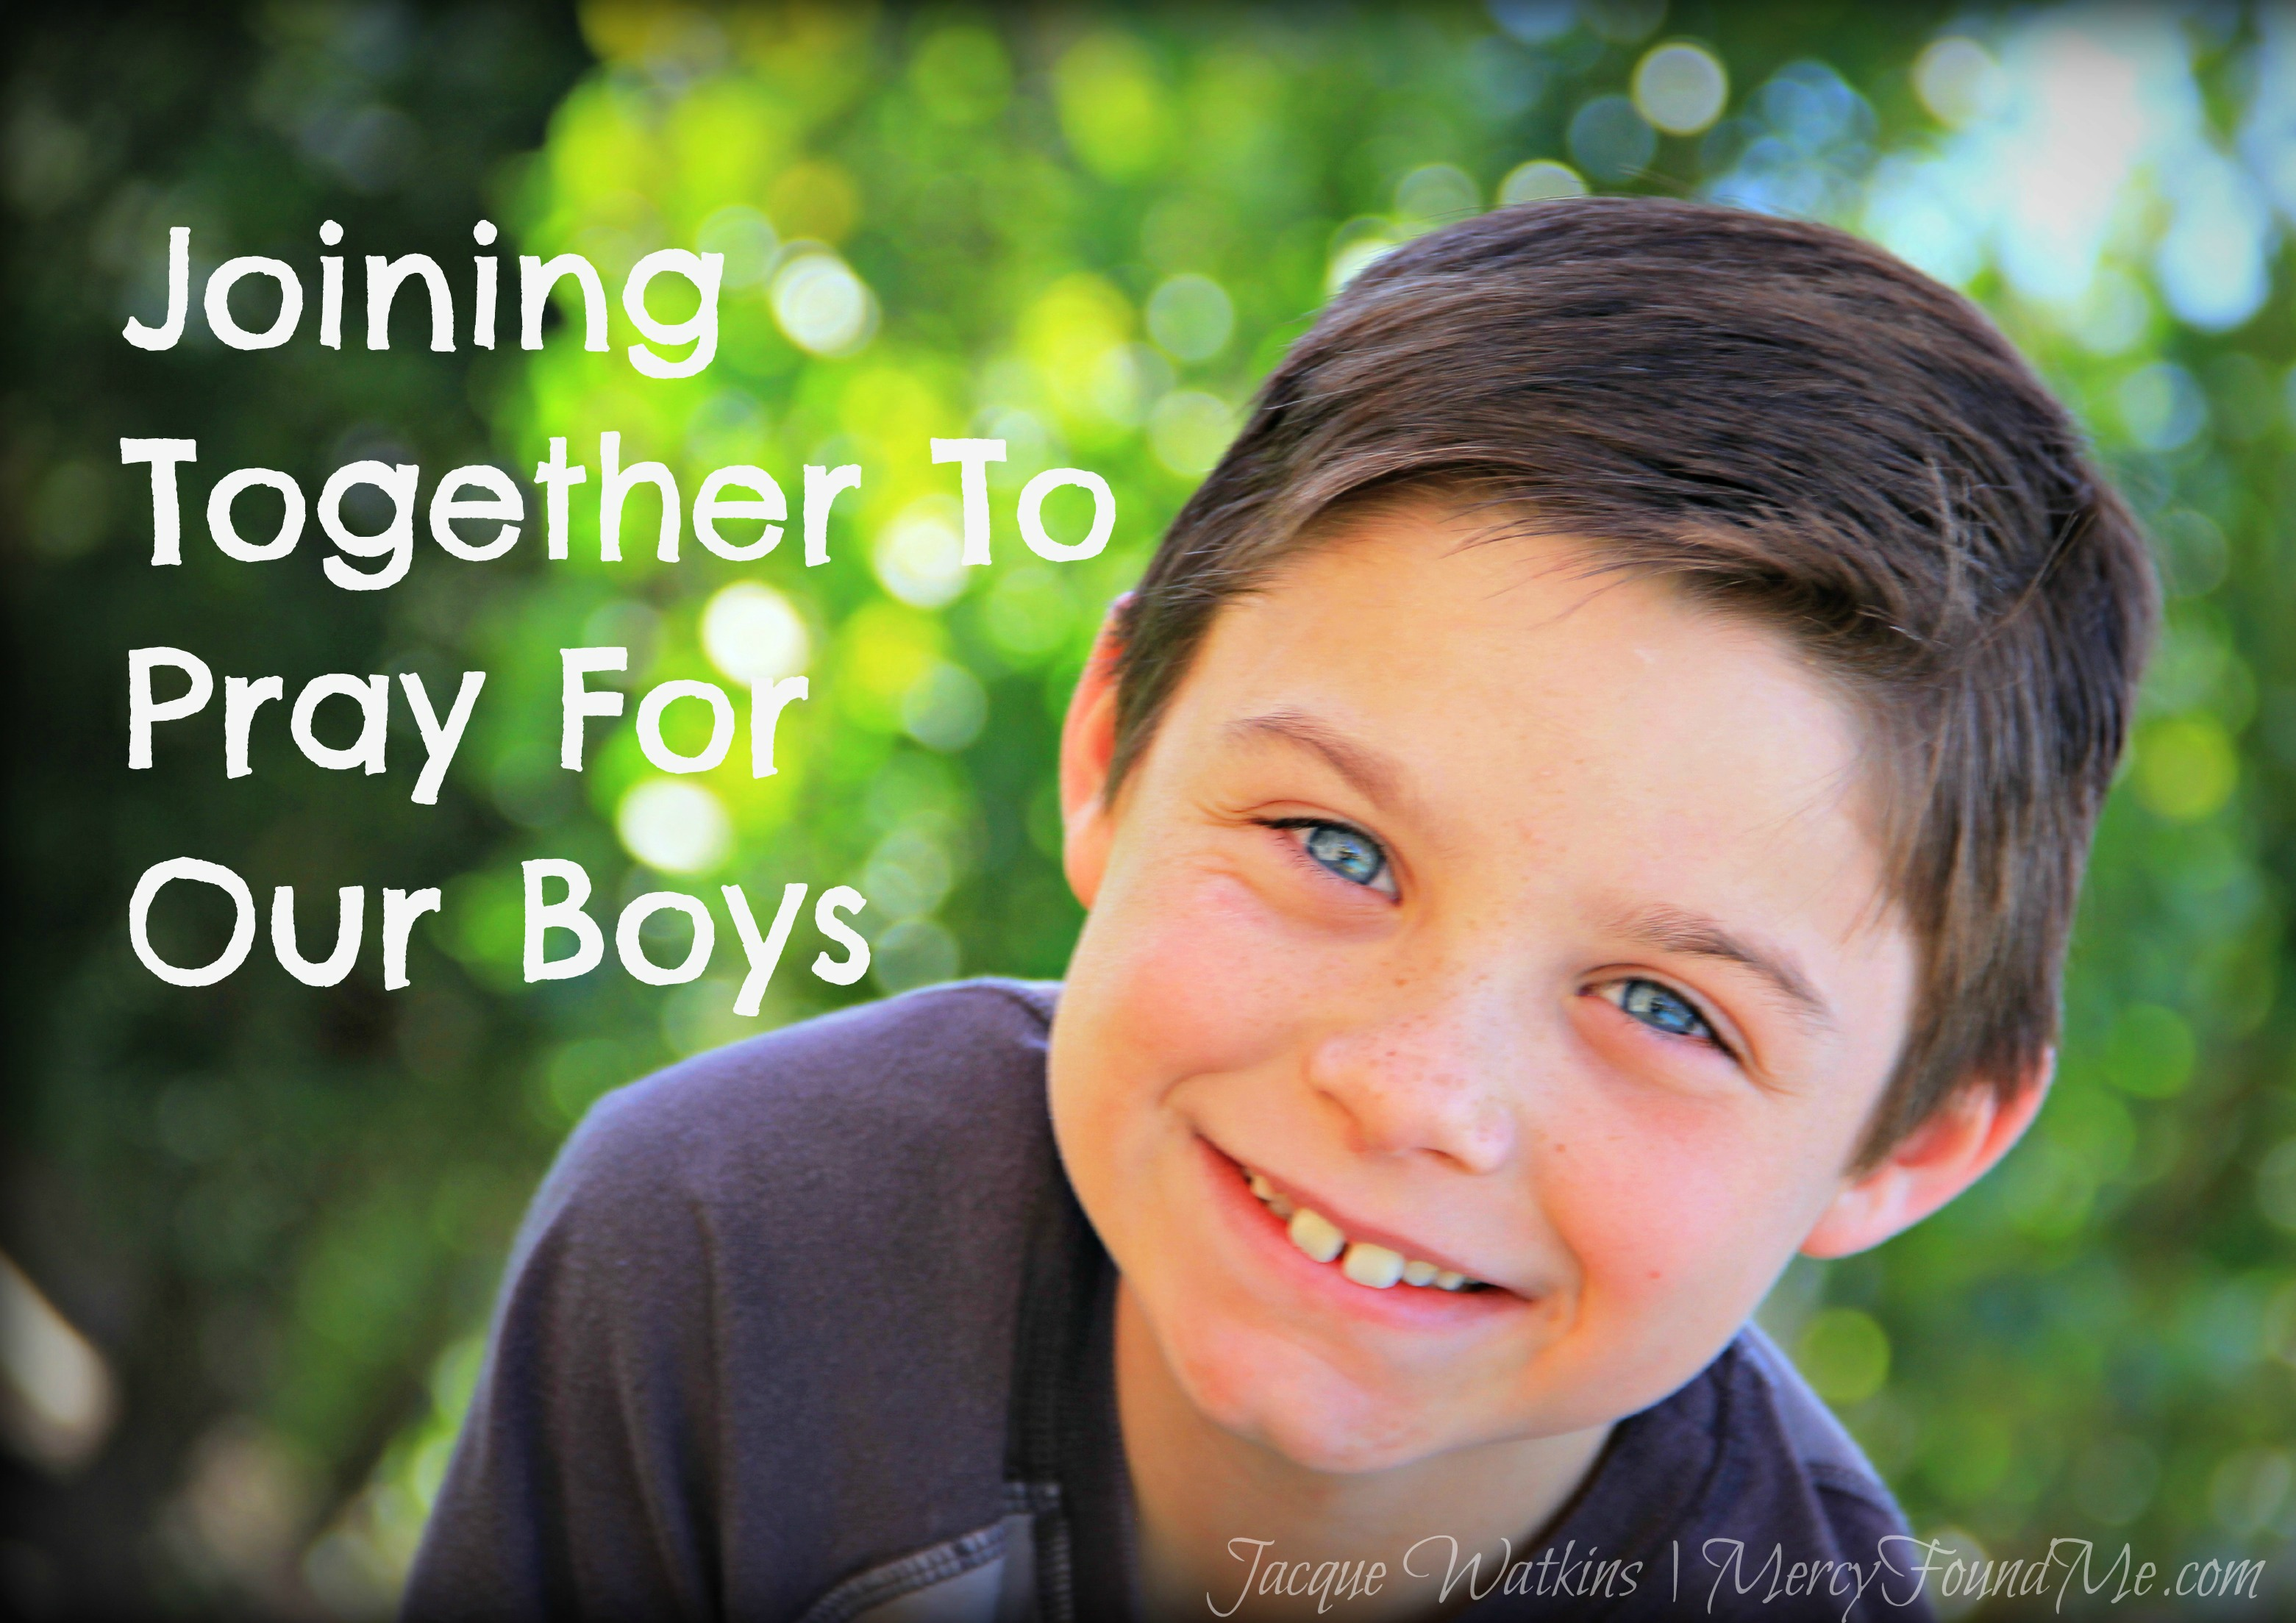 Why We Need to Pray for Our Boys and Their Future Wives